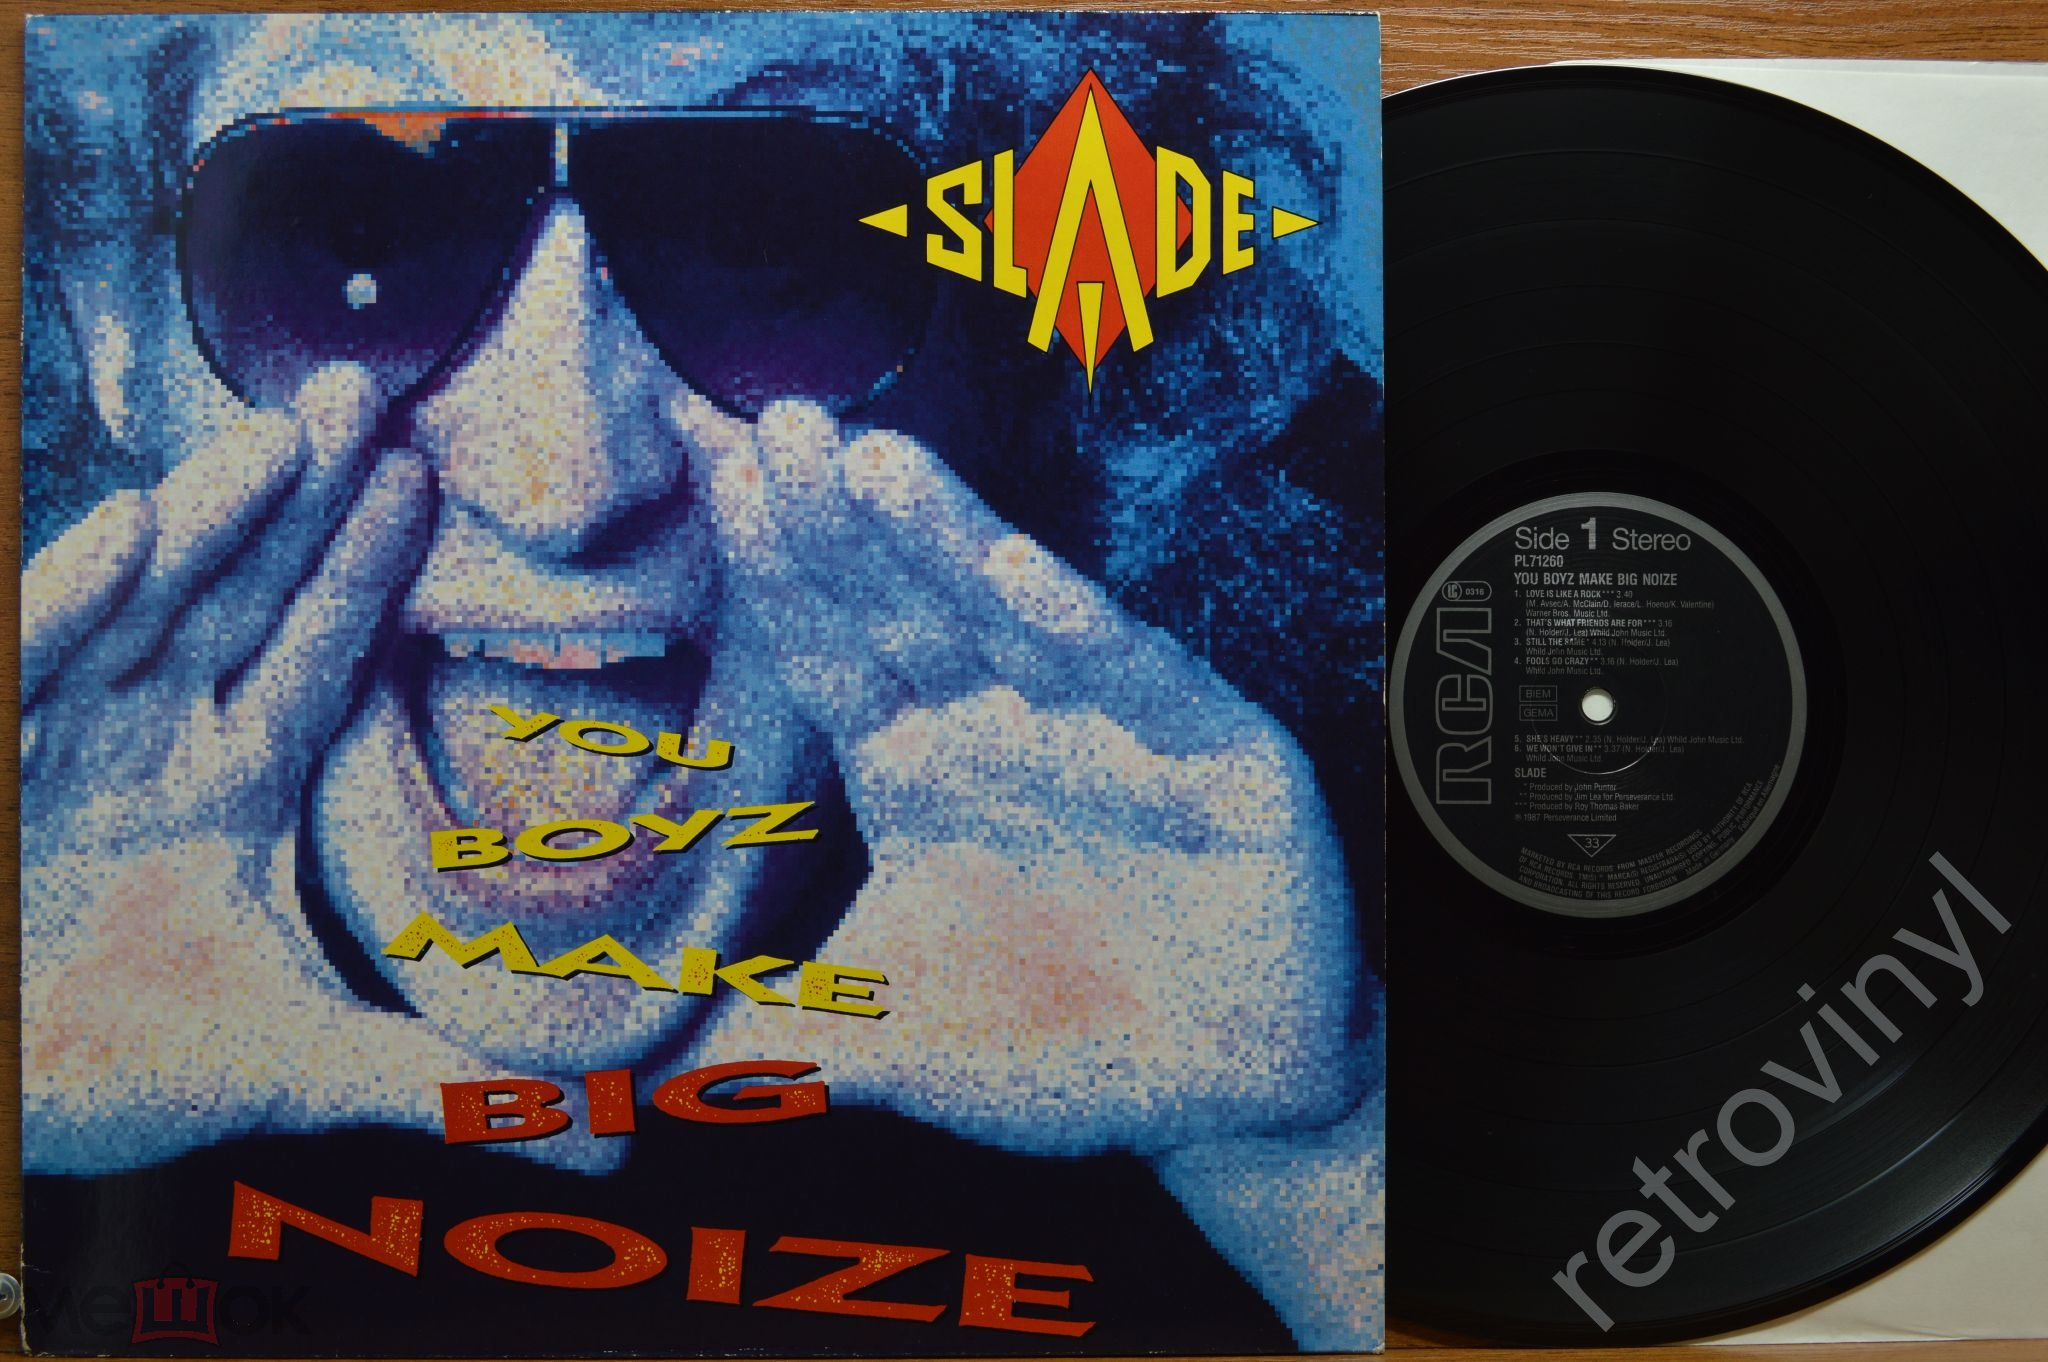 SLADE - You Boyz Make Big Noize - PL 71260 RCA/ Perseverance Ltd. ORIGINAL 1987 год GERMANY пресс EX